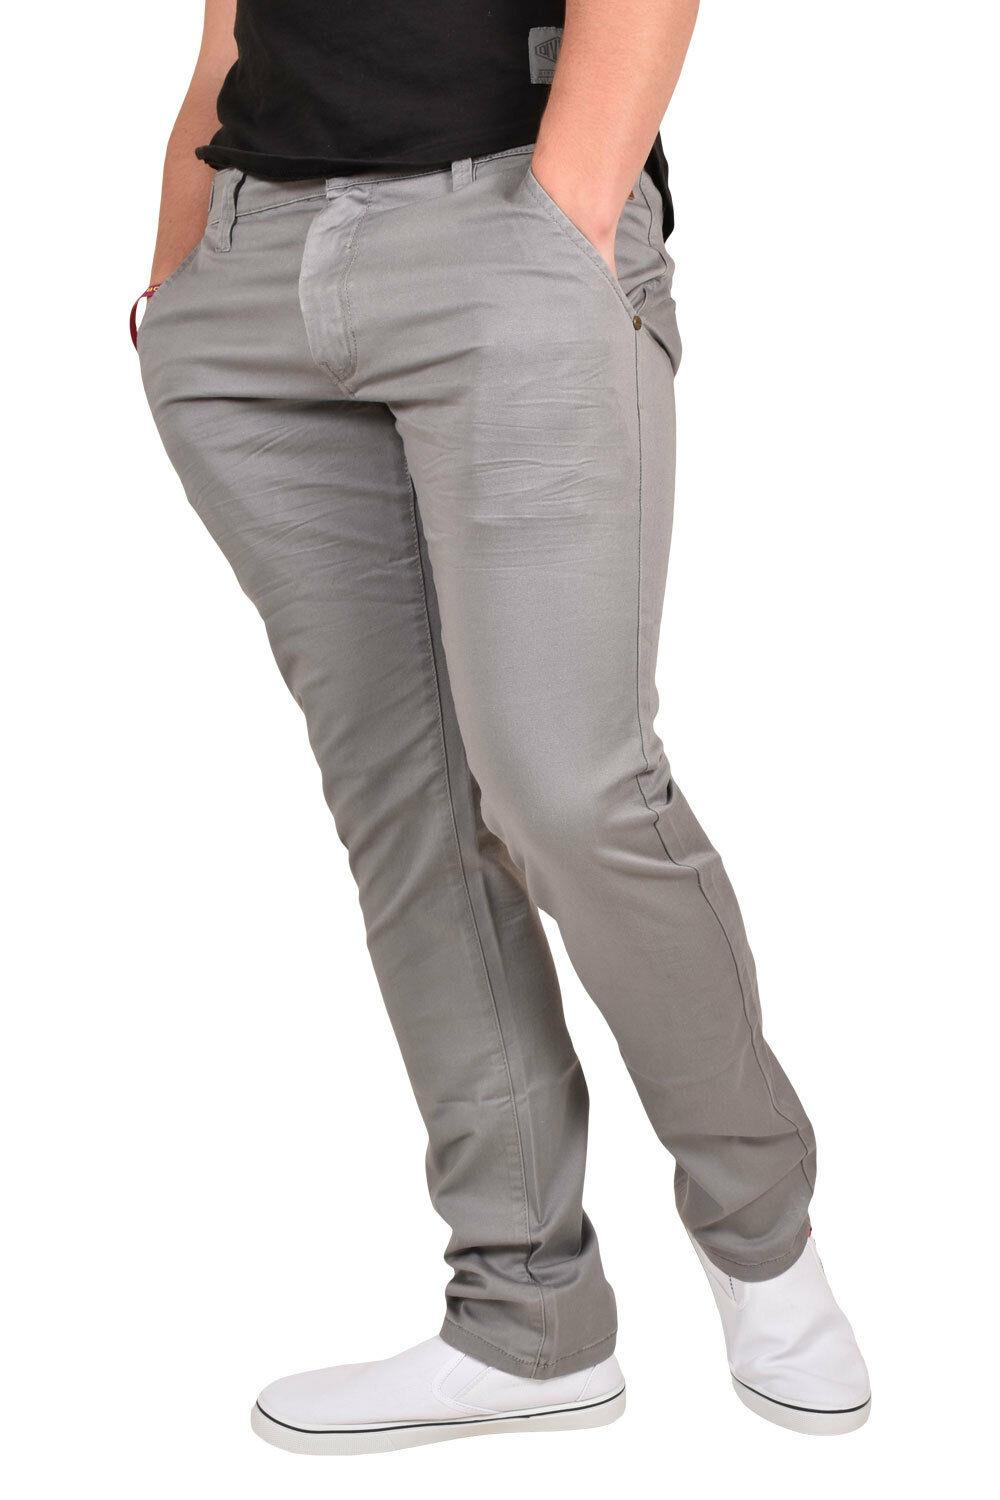 New-Mens-Designer-Jacksouth-Chino-Regular-Fit-Stretch-Cotton-Rich-Twill-Trousers thumbnail 13